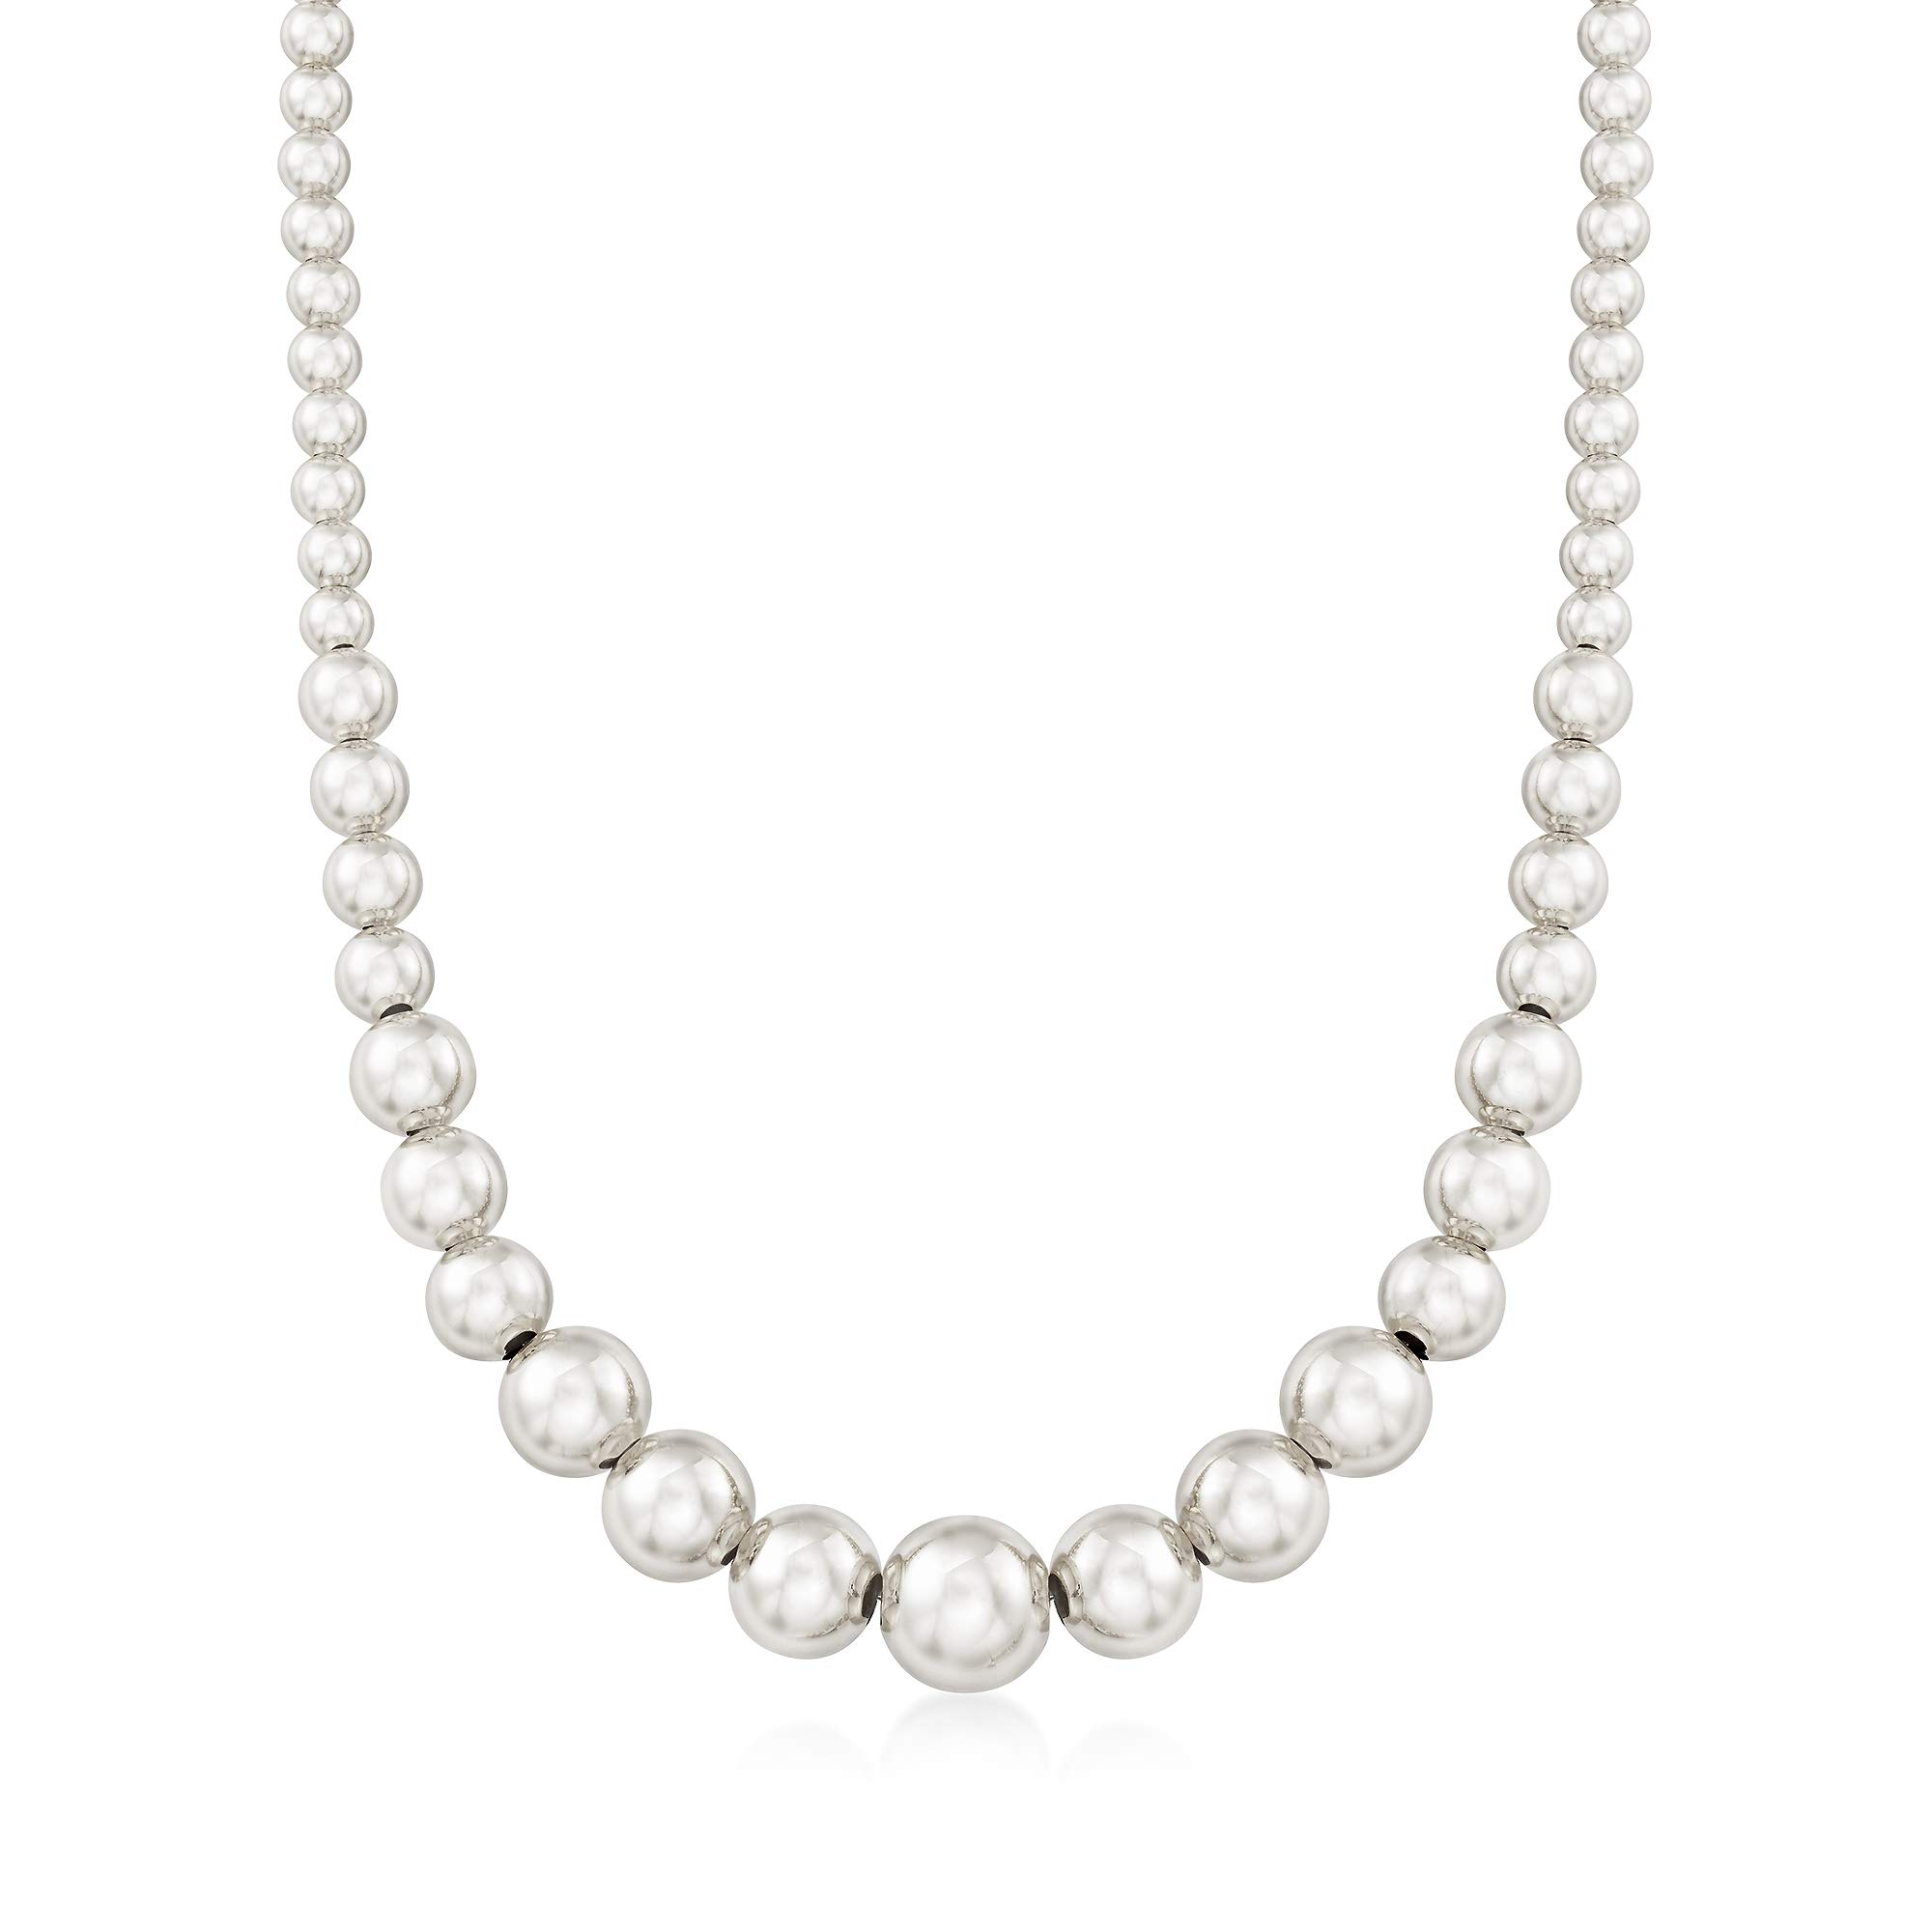 Ross-Simons Italian 6-14mm Sterling Silver Graduated Bead Necklace by Ross-Simons